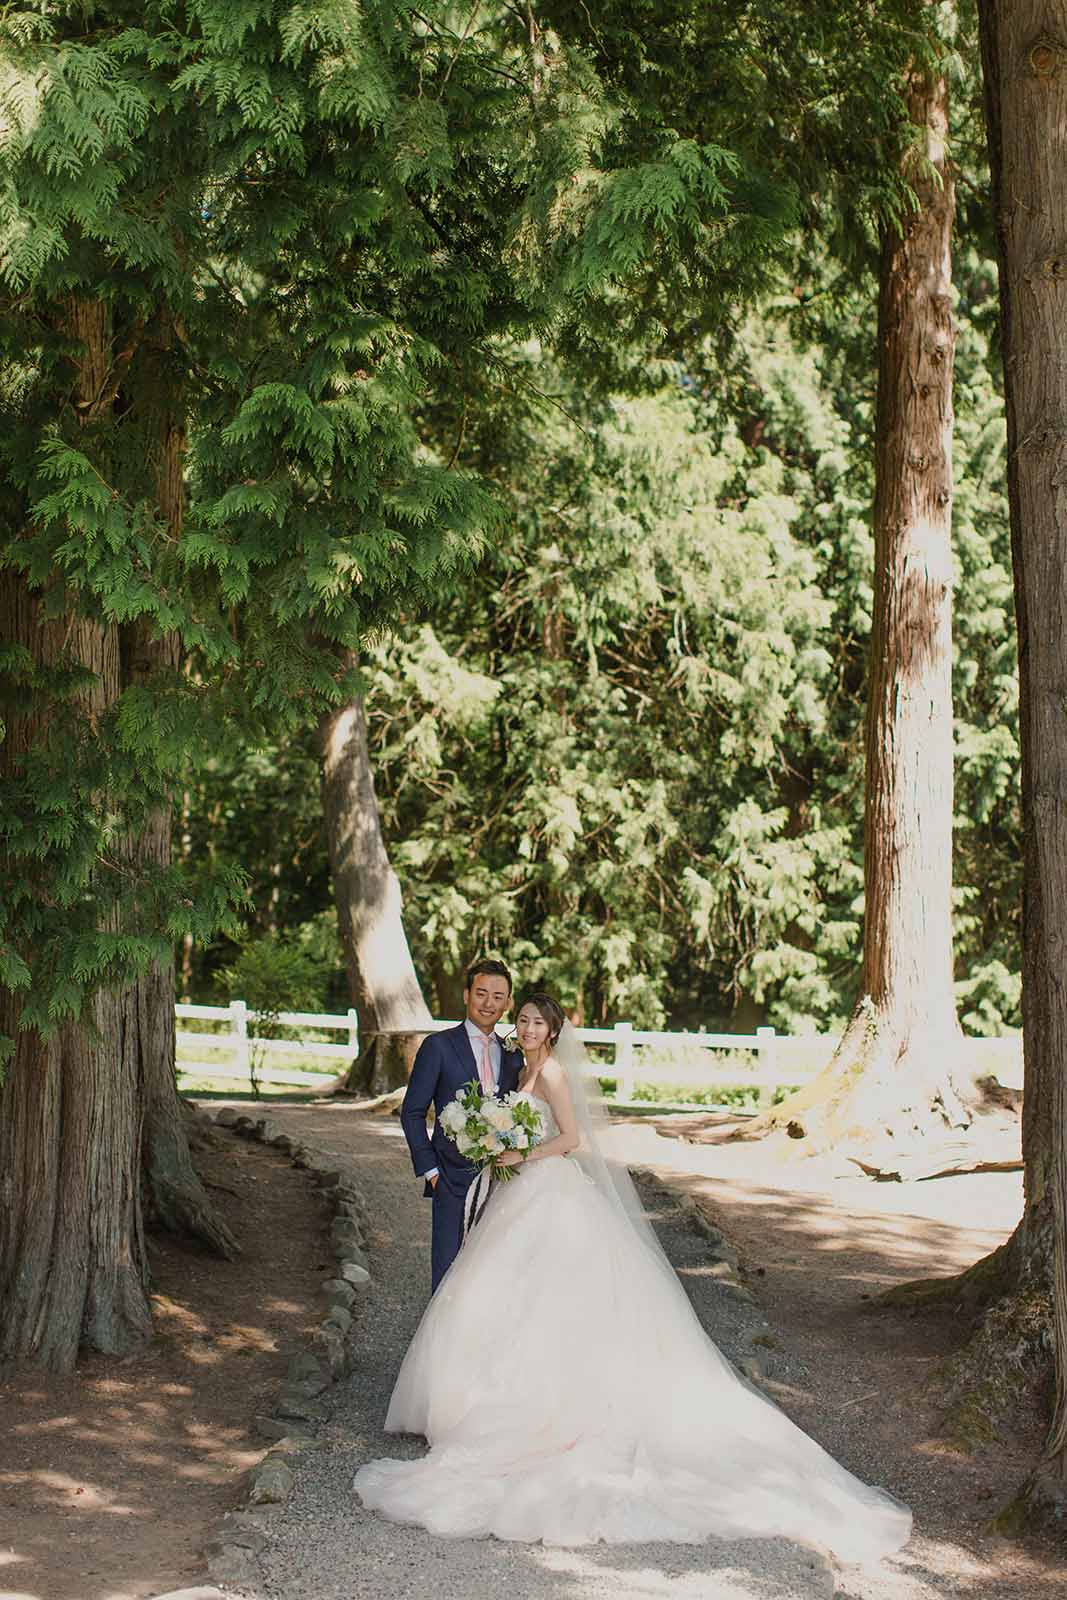 A cream and blue wedding under the trees at Chateau Lill.